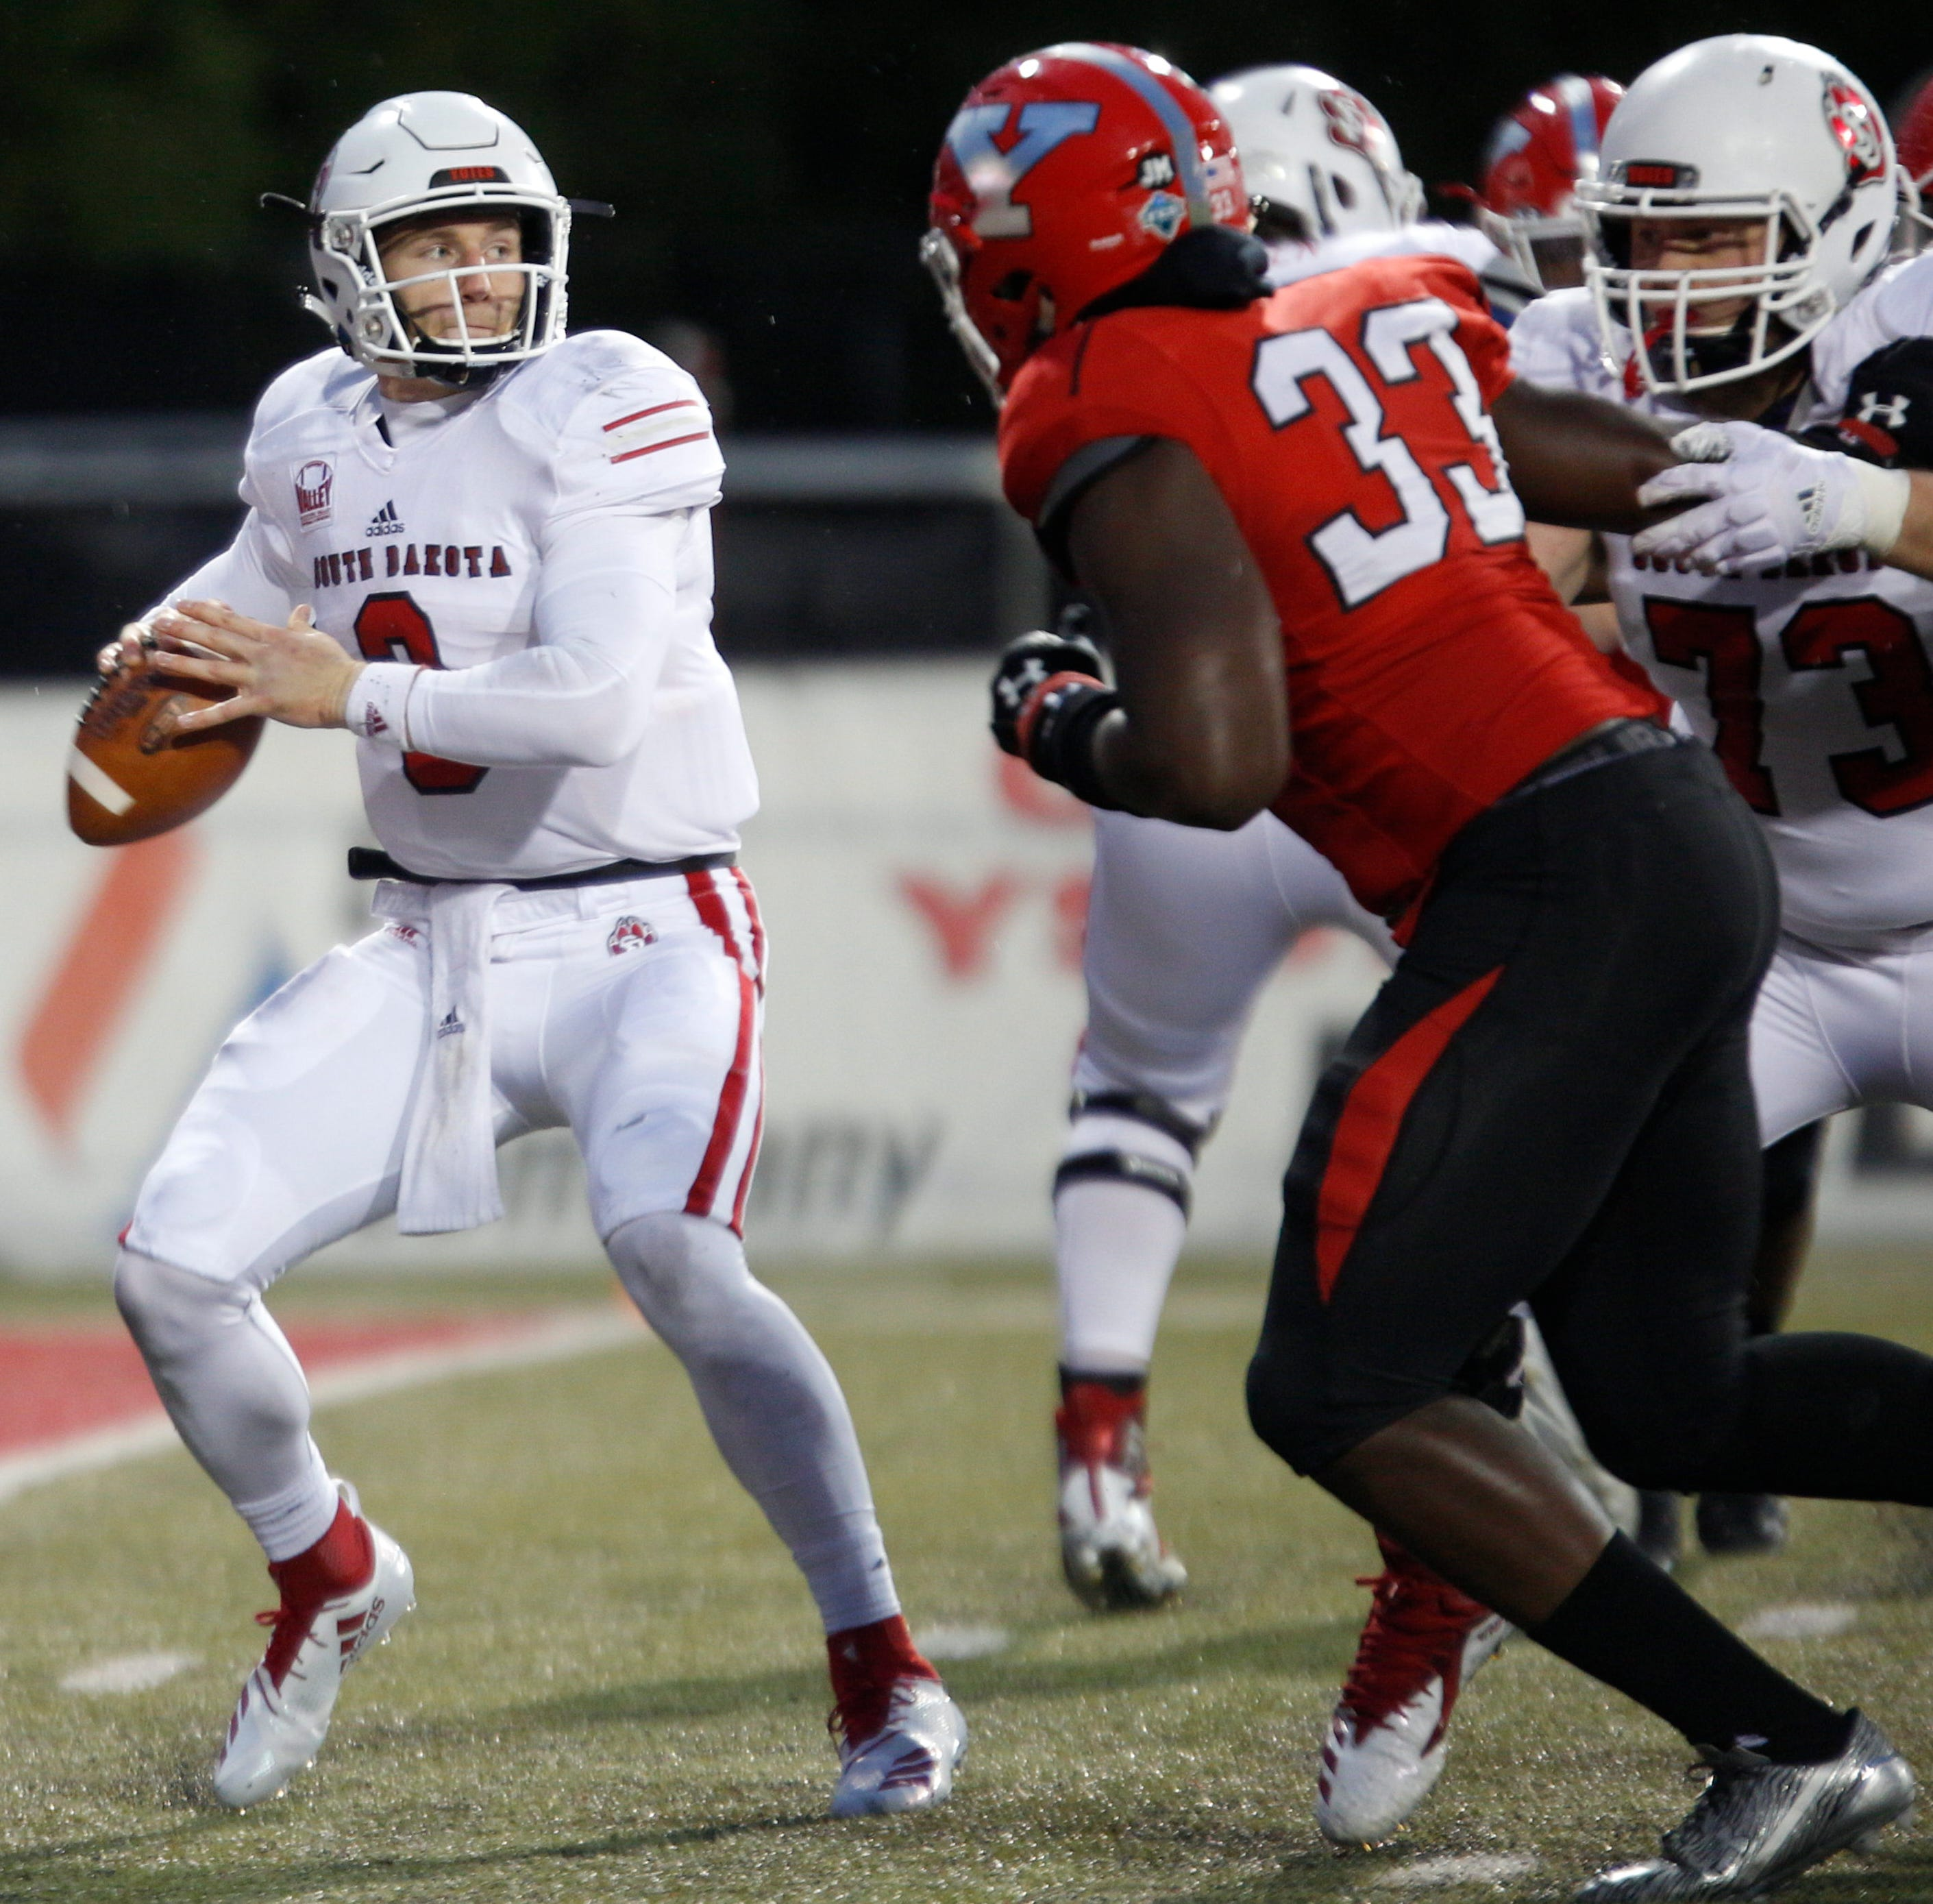 Bad start too much to overcome for South Dakota in loss to Youngstown State